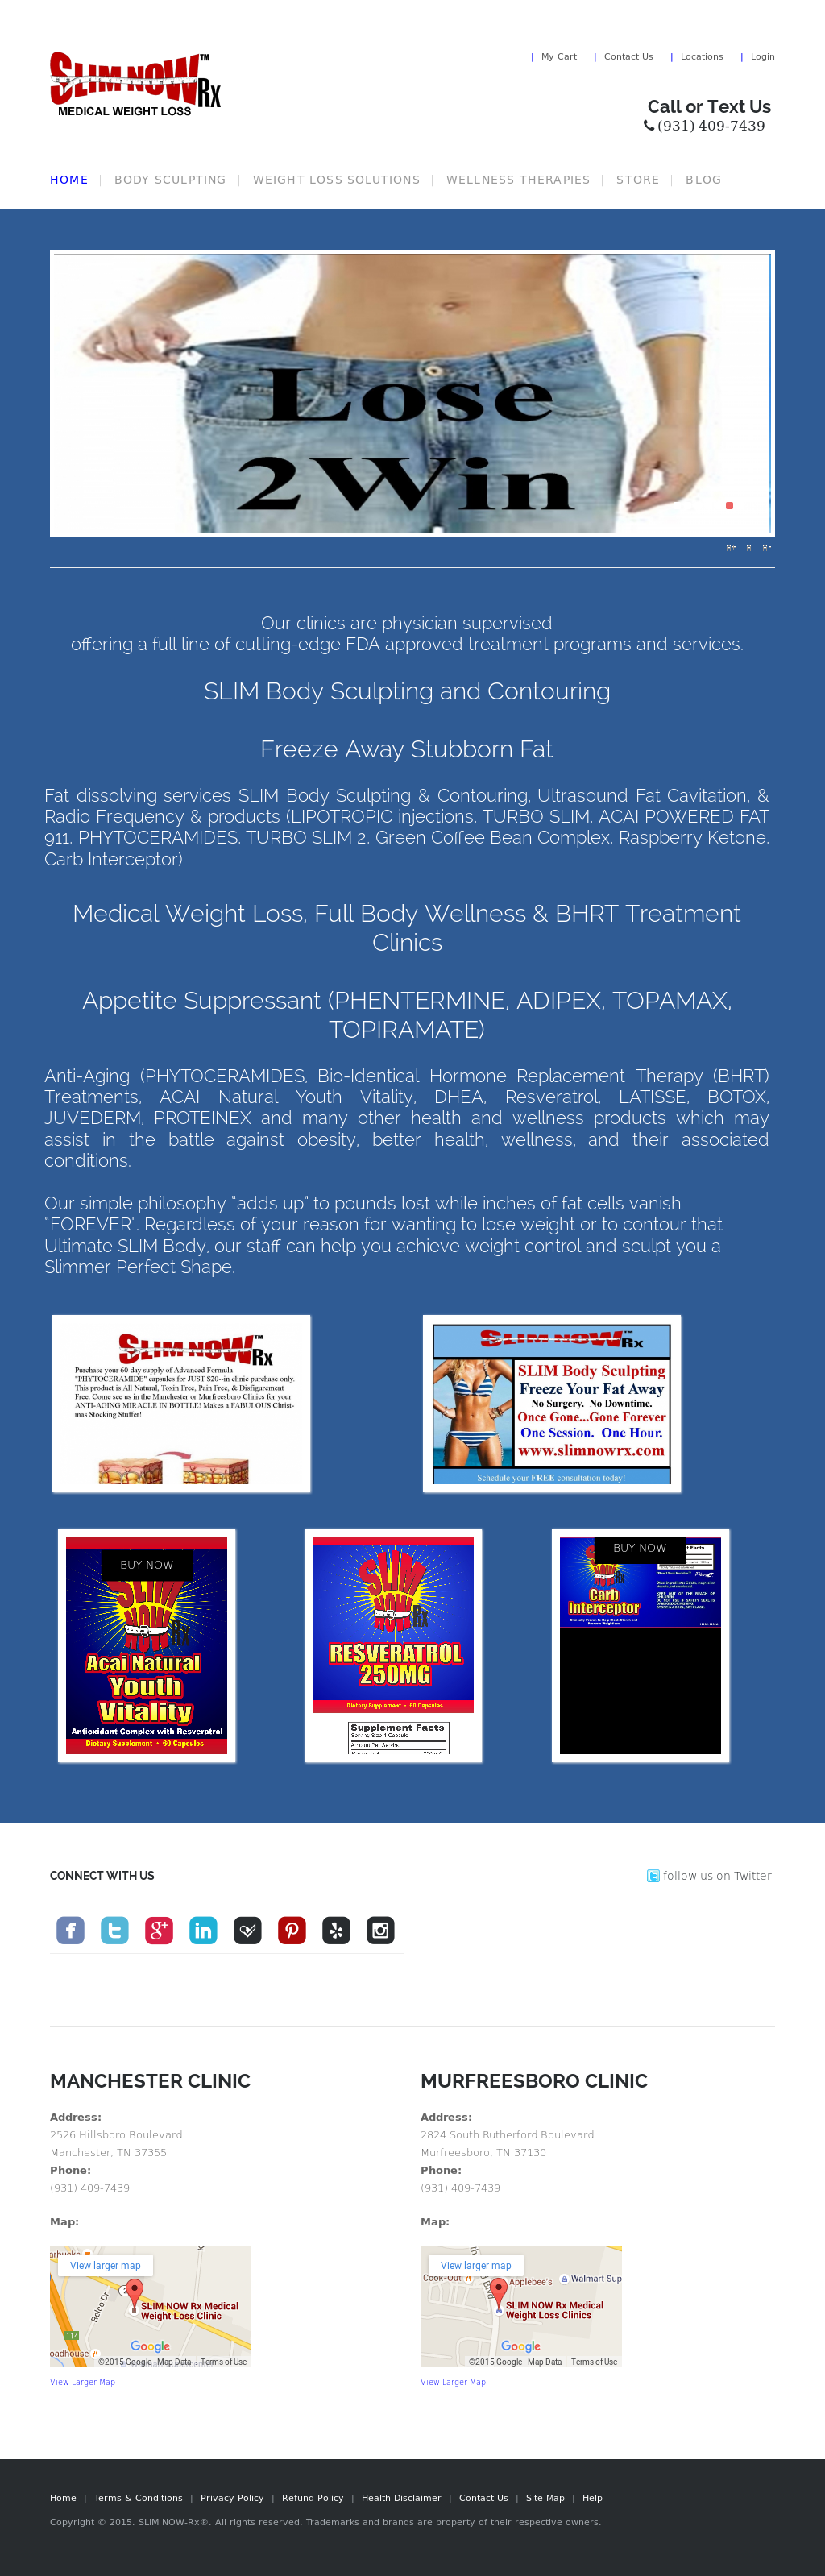 Garcinia cambogia and natural cleanse diet image 10